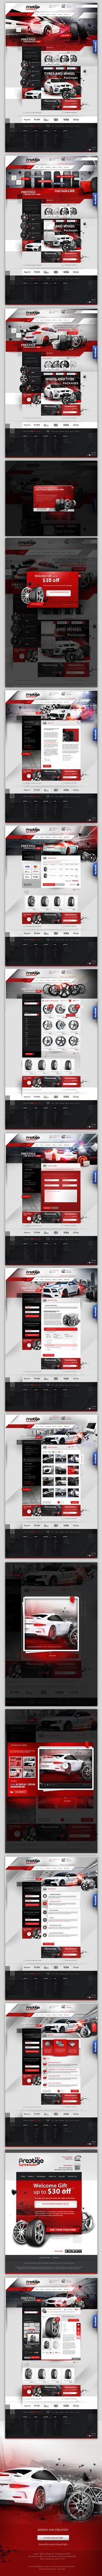 store site Prestige tyre and auto by creativehead, via Behance